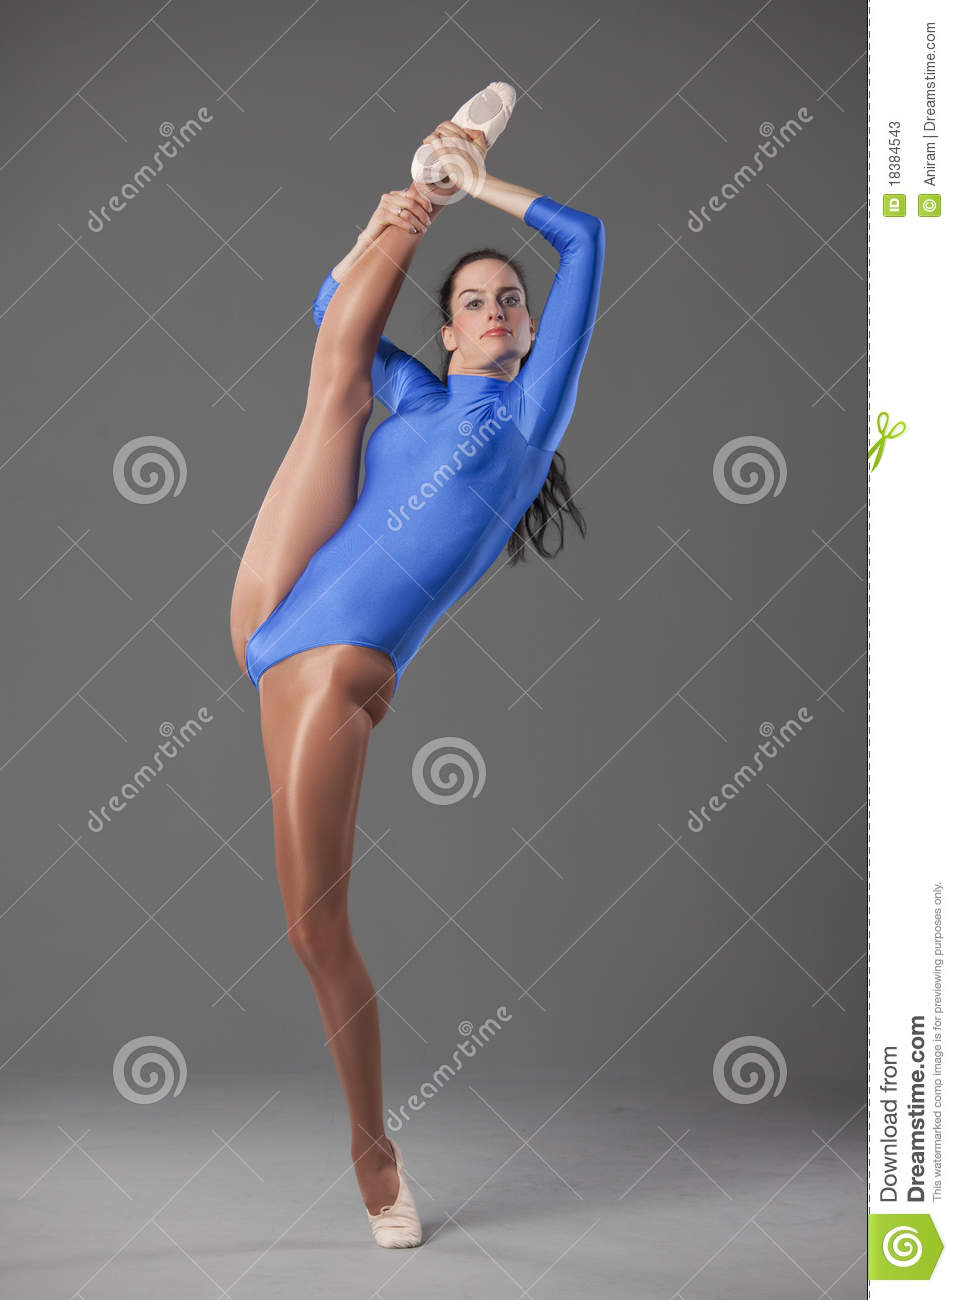 Female gymnast in extreme splits pose over grey background.